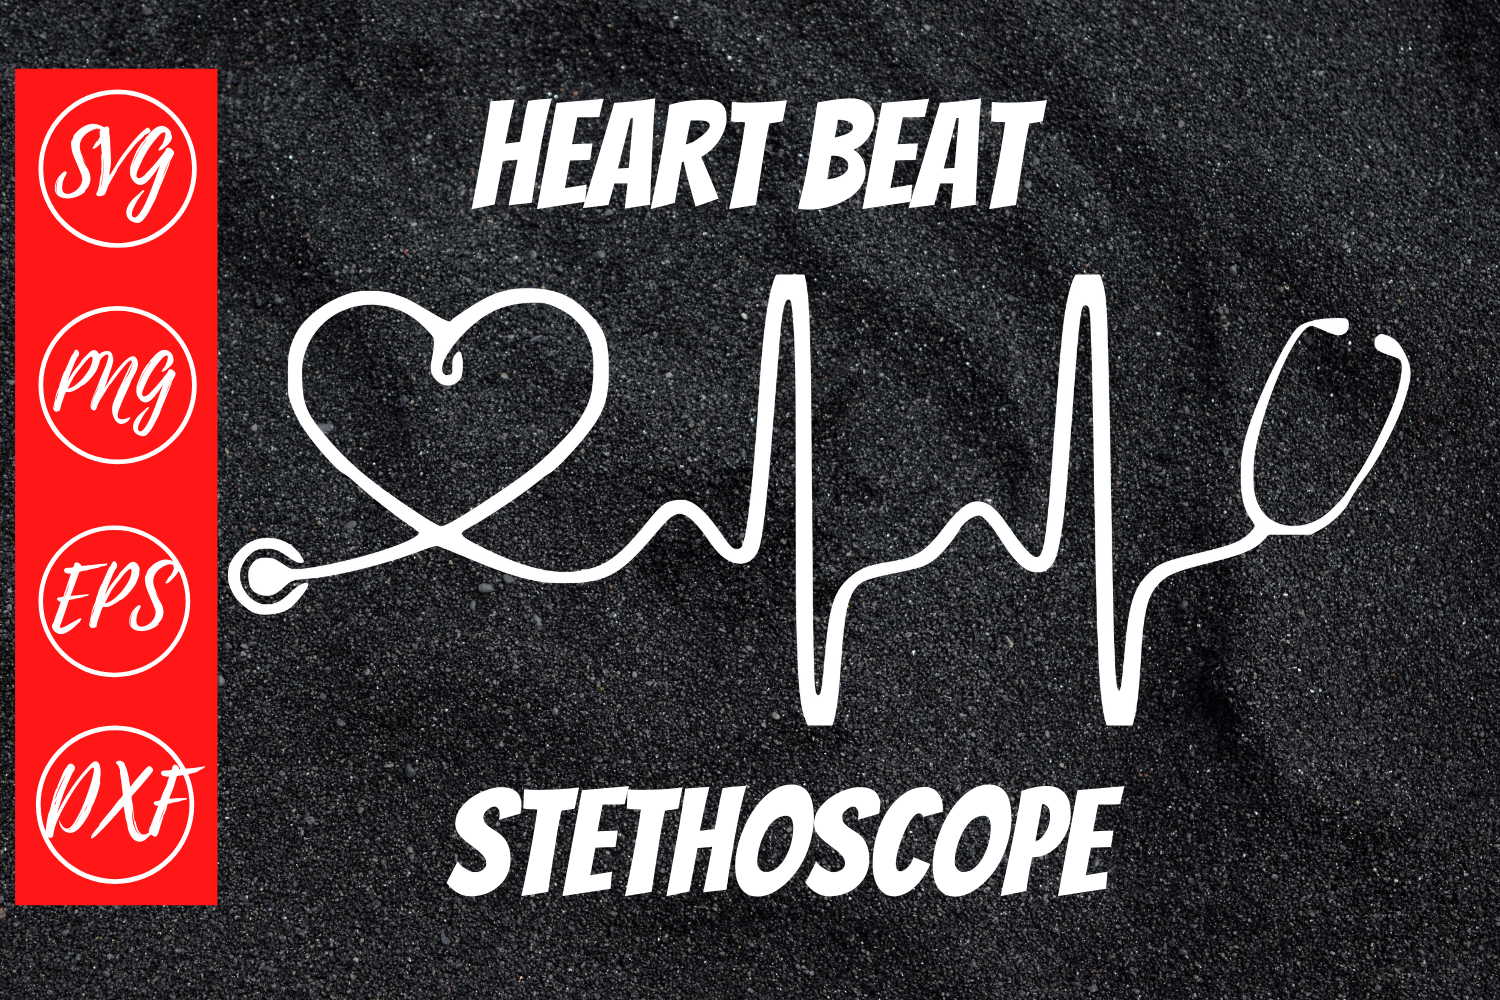 Download Free Heart Beat Stethoscope Svg Cut File Graphic By Mockup Venue for Cricut Explore, Silhouette and other cutting machines.